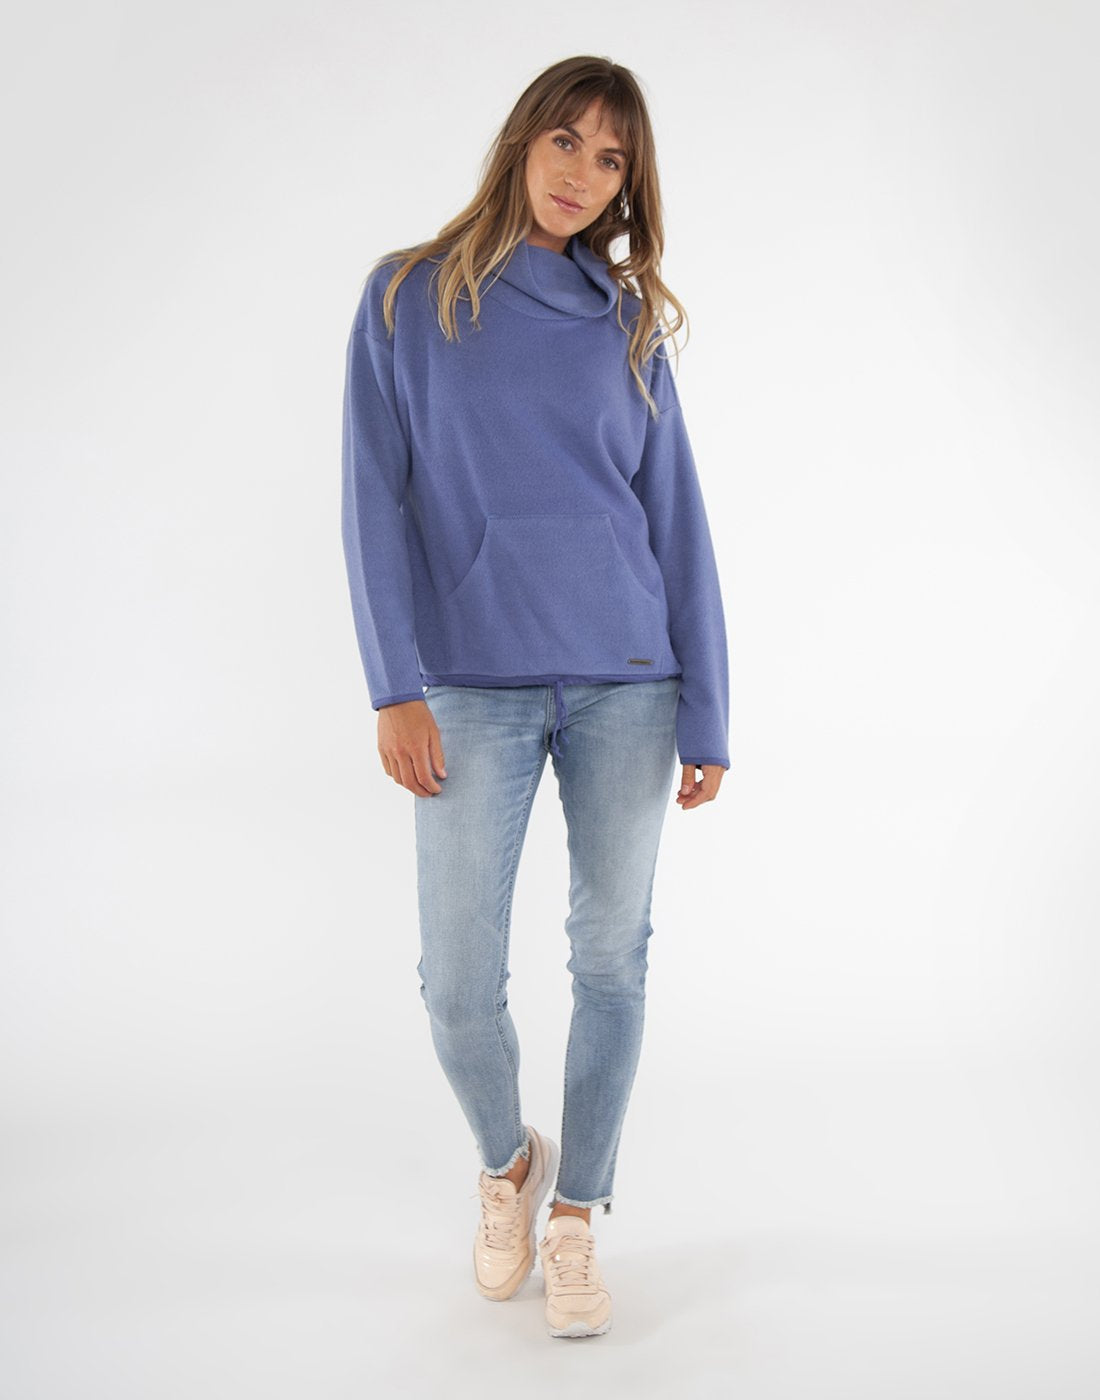 Carve Designs Rowayton Cowl Neck Sweater - Sale